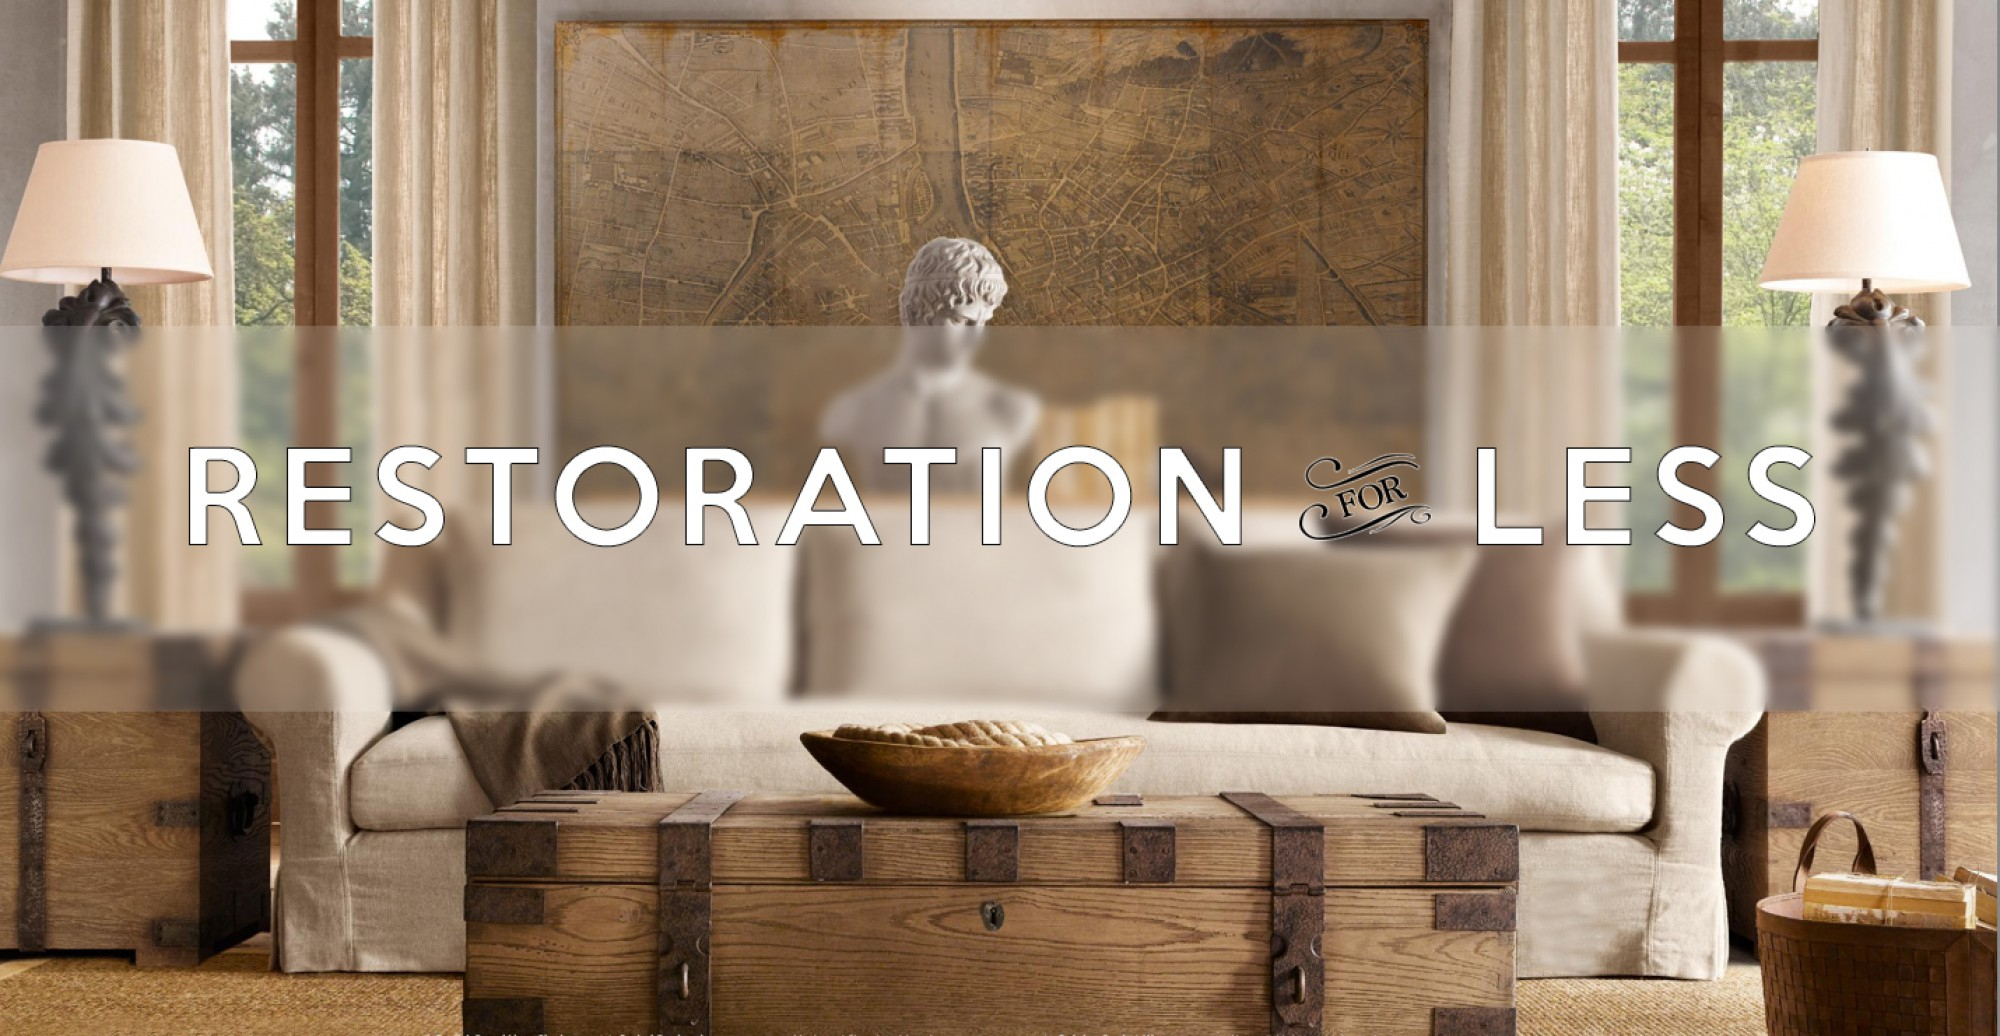 Restoration Hardware Style, Without The Price – Restoration intended for Restoration Hardware Style Furniture For Less